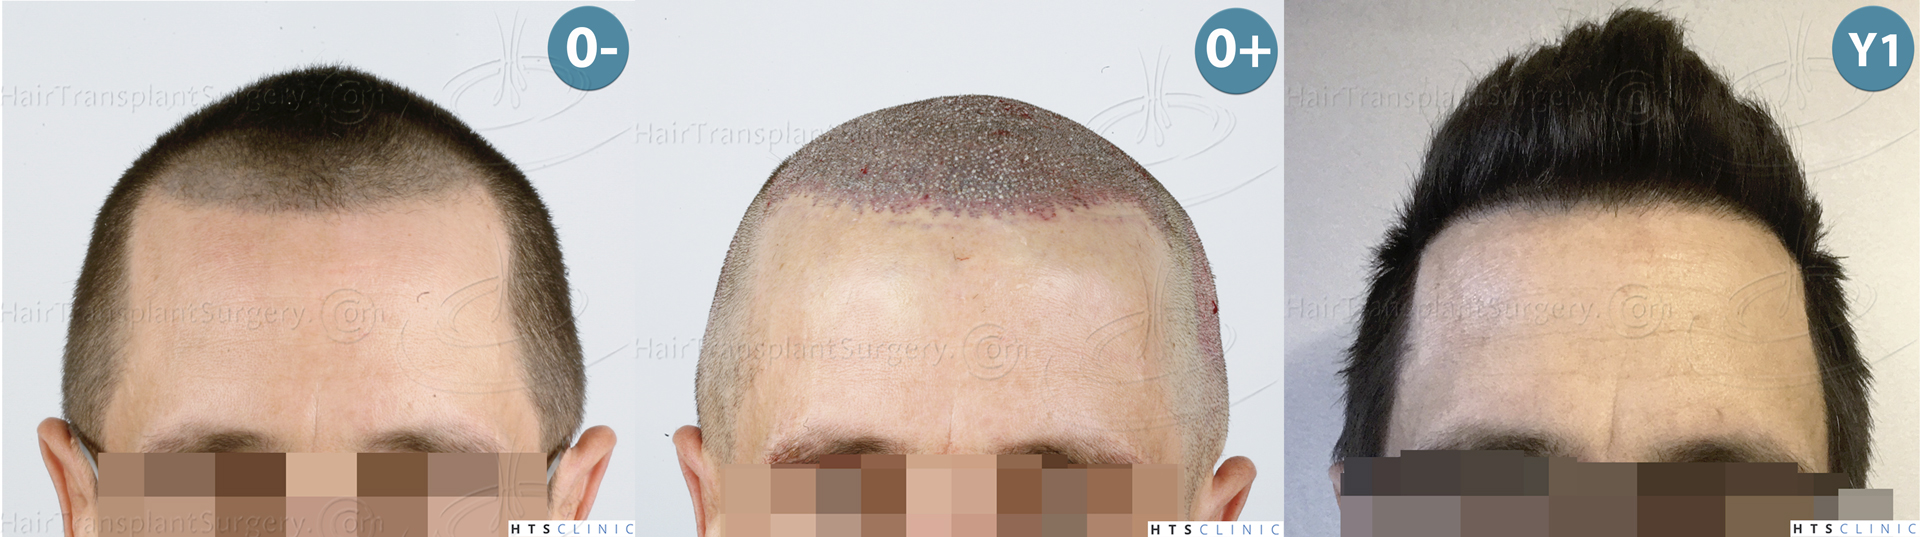 Dr.Devroye-HTS-Clinic-2950-FUE-NW-III-Montage-1.jpg